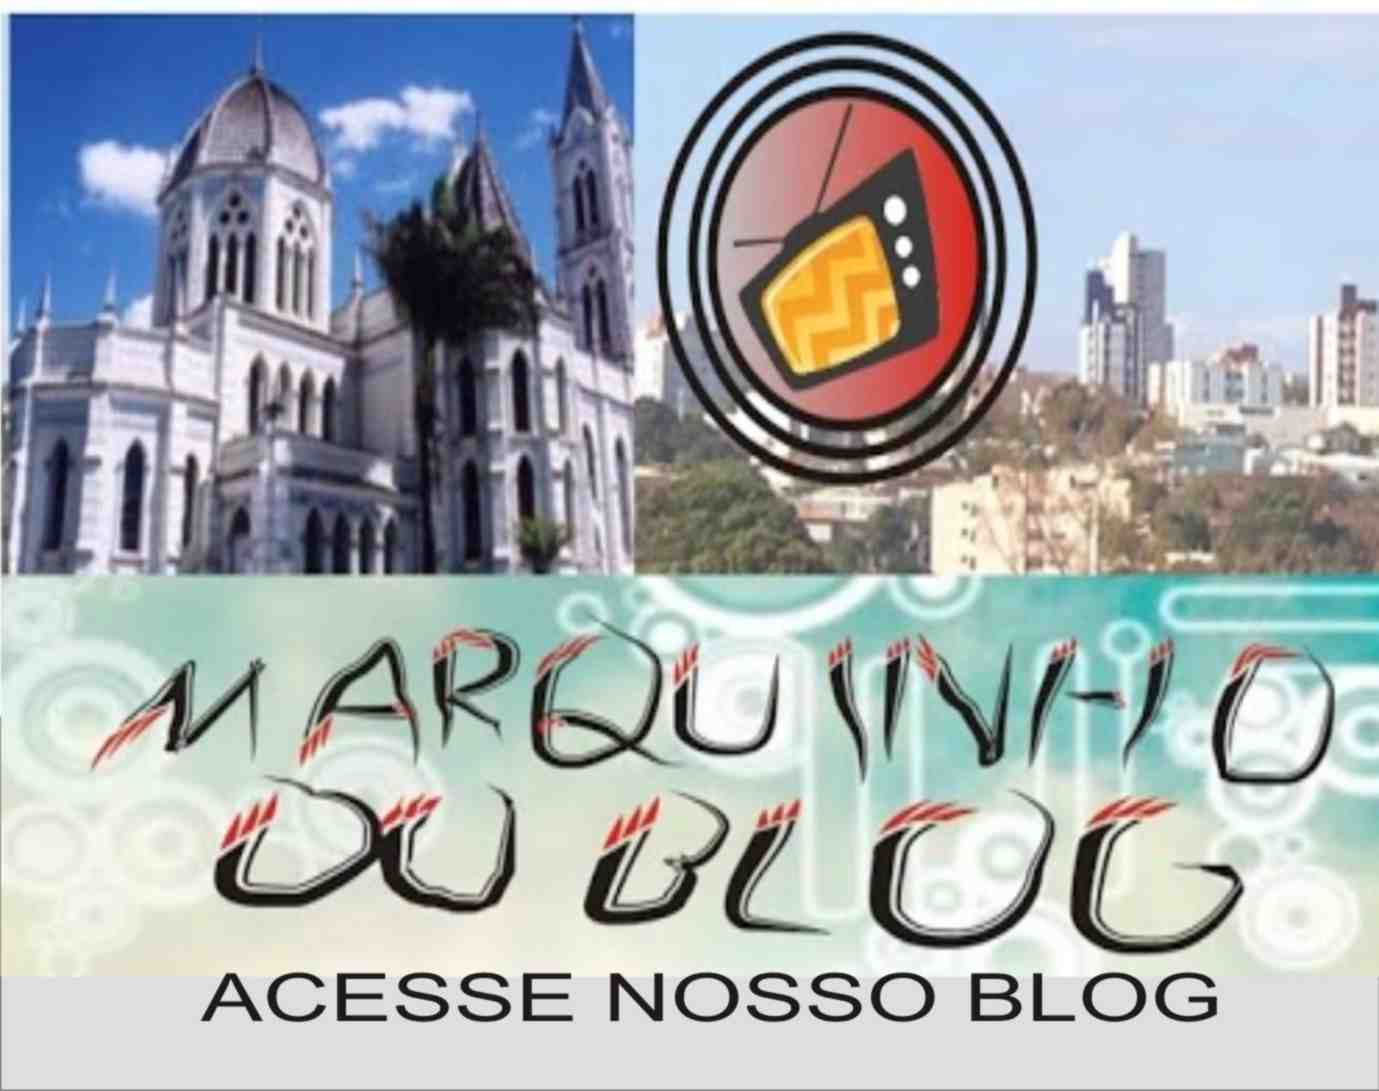 MARQUINHO DO BLOG